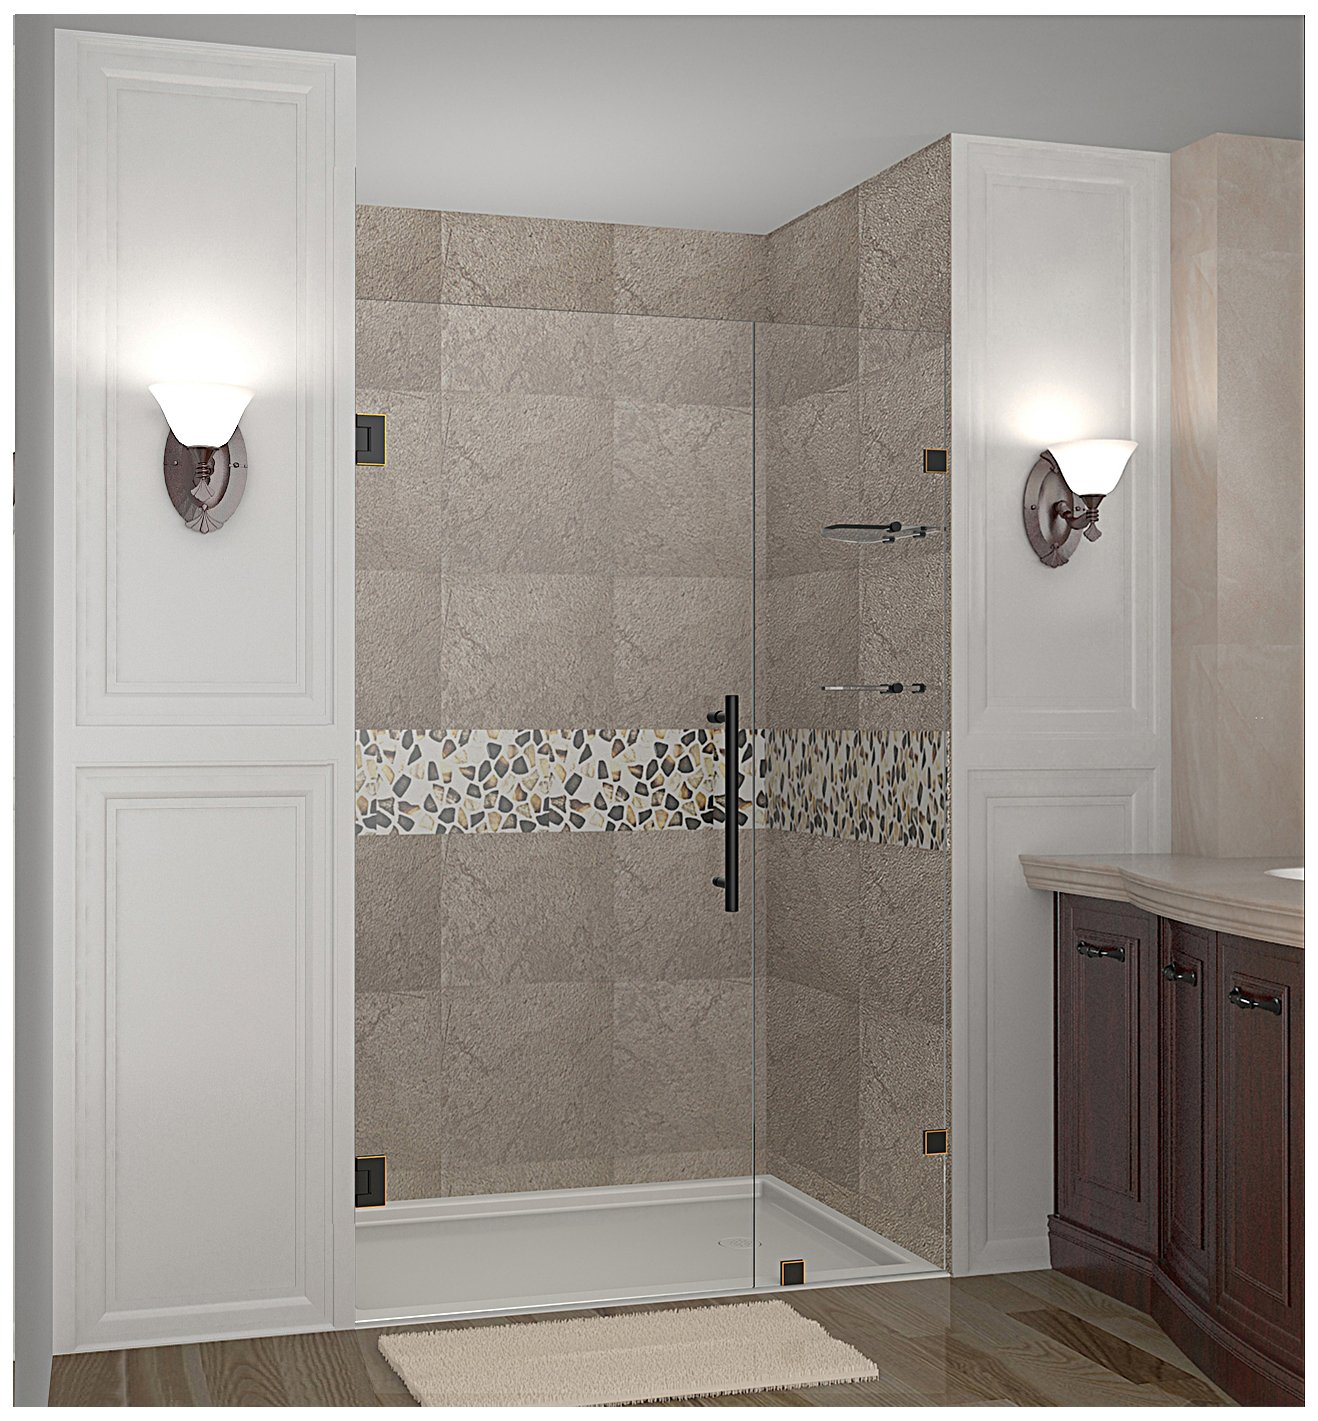 Brushed Stainless Steel Aston Nautis GS 42 x 72 Completely Frameless Hinged Shower Door with Glass Shelves